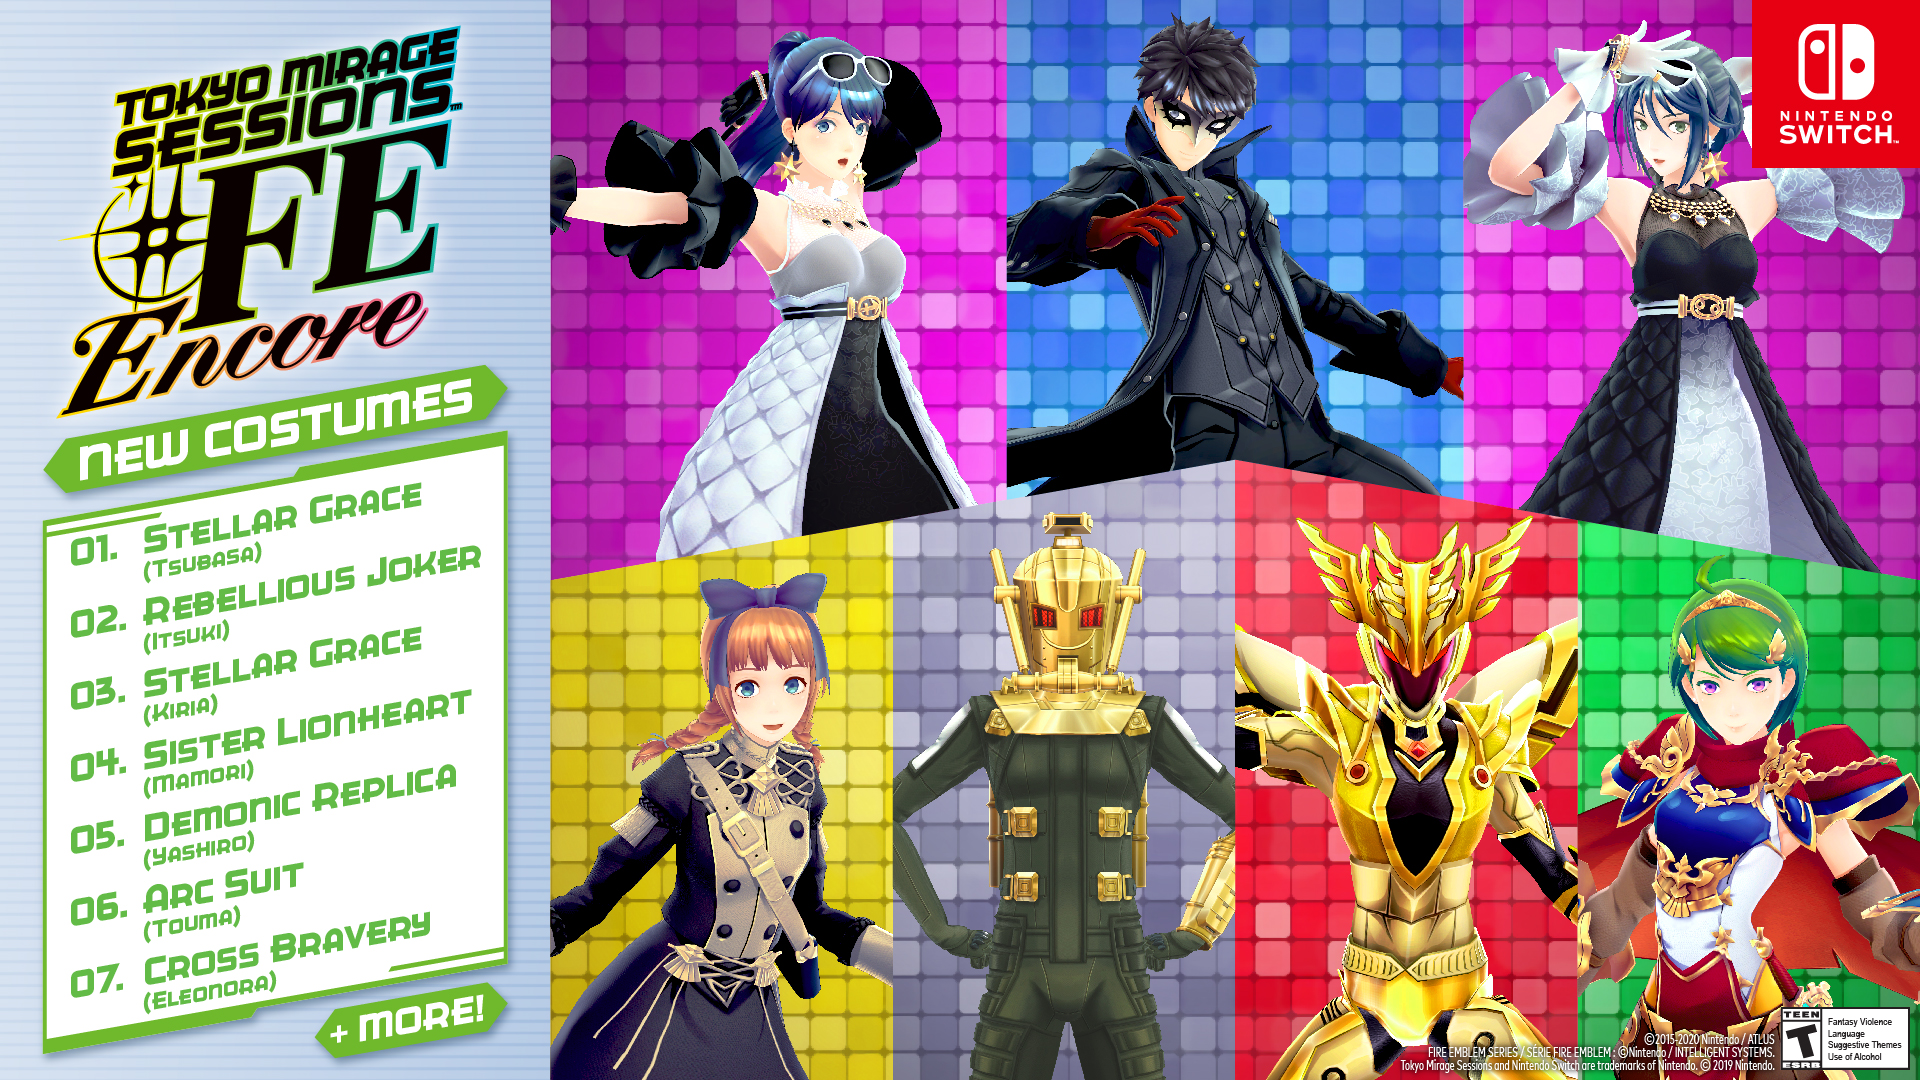 Nintendo shares promotional image featuring some of the new costumes in Tokyo Mirage Sessions #FE Encore